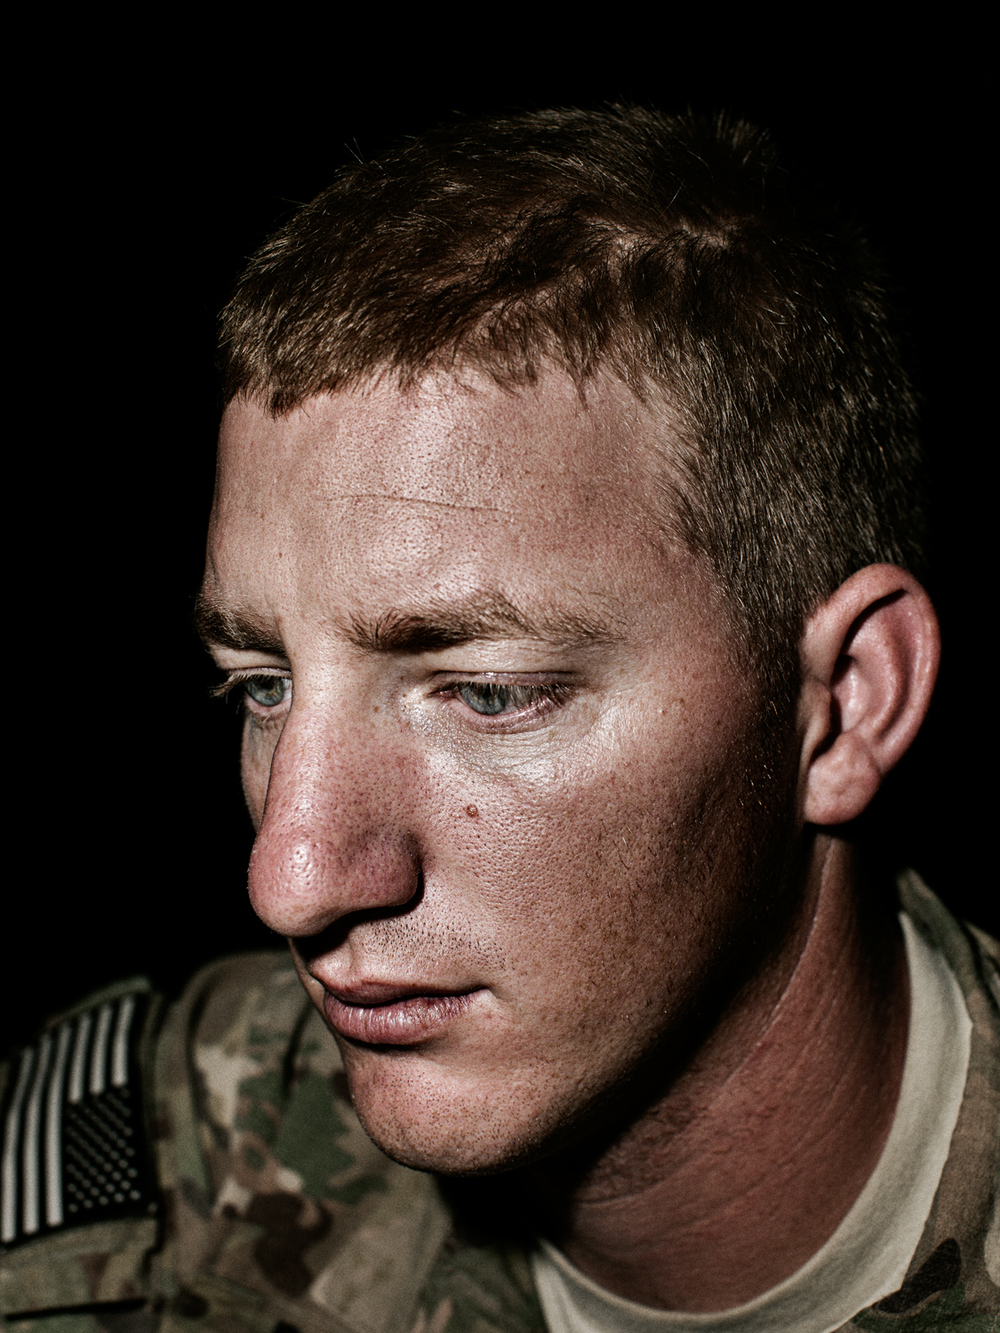 U.S. Army Private First Class Jeffrey Drake.